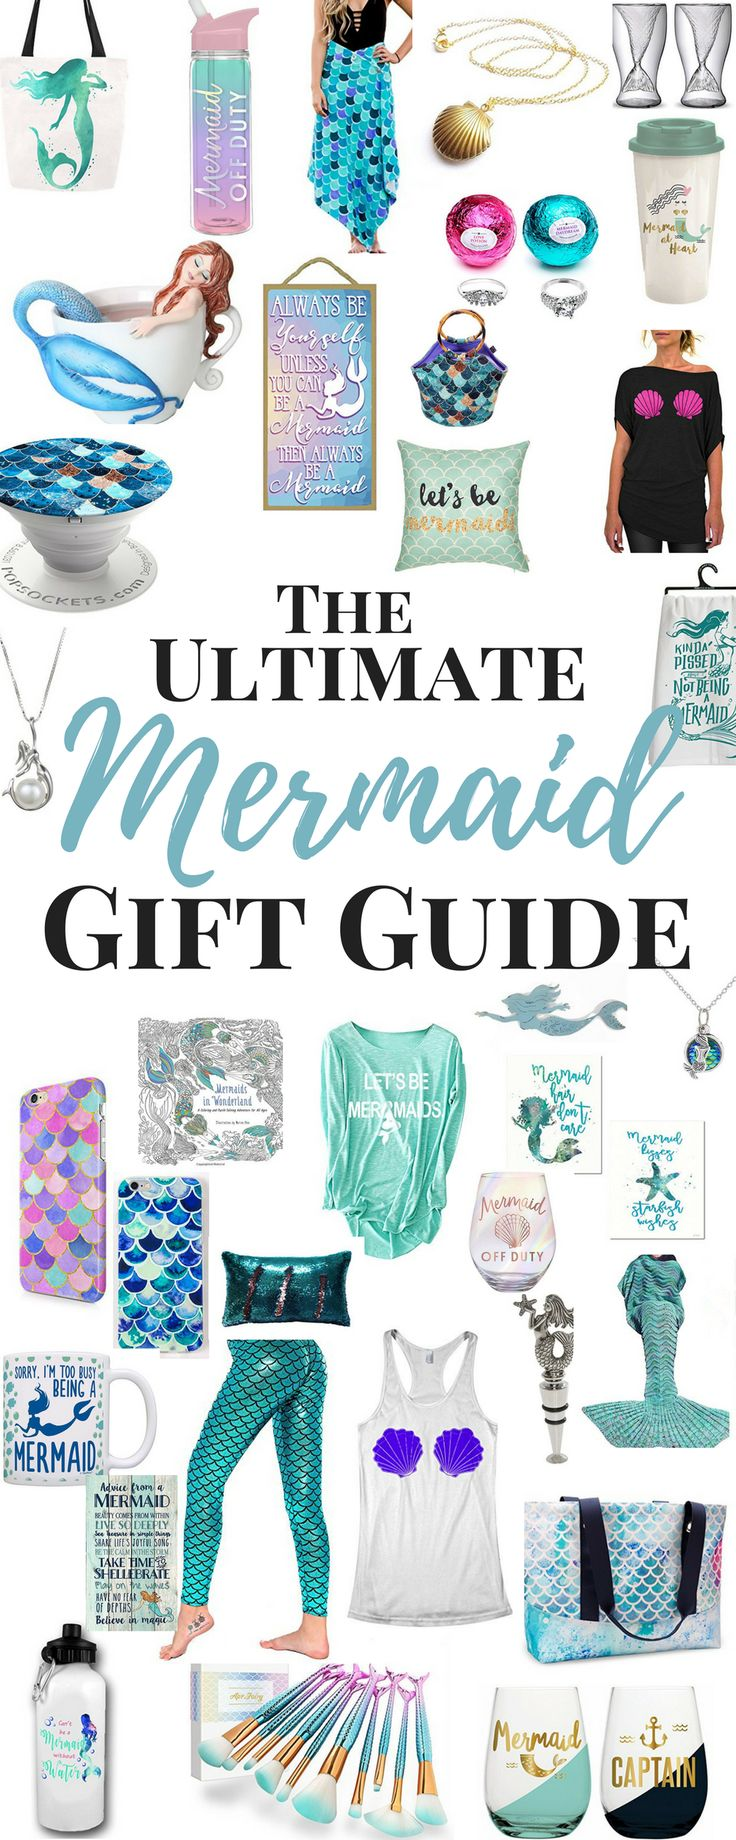 Mermaid Gifts - Looking for awesome Gift Ideas For Her? Gifts for Women? Gift Ideas for Girls? Here are some great Mermaid Gift Ideas for the Mermaid Lover on your list. and these are also Mermaid gifts for adults! Bring these awesome Mermaid Gifts to your next Mermaid Party! Get the best Gift for her!!